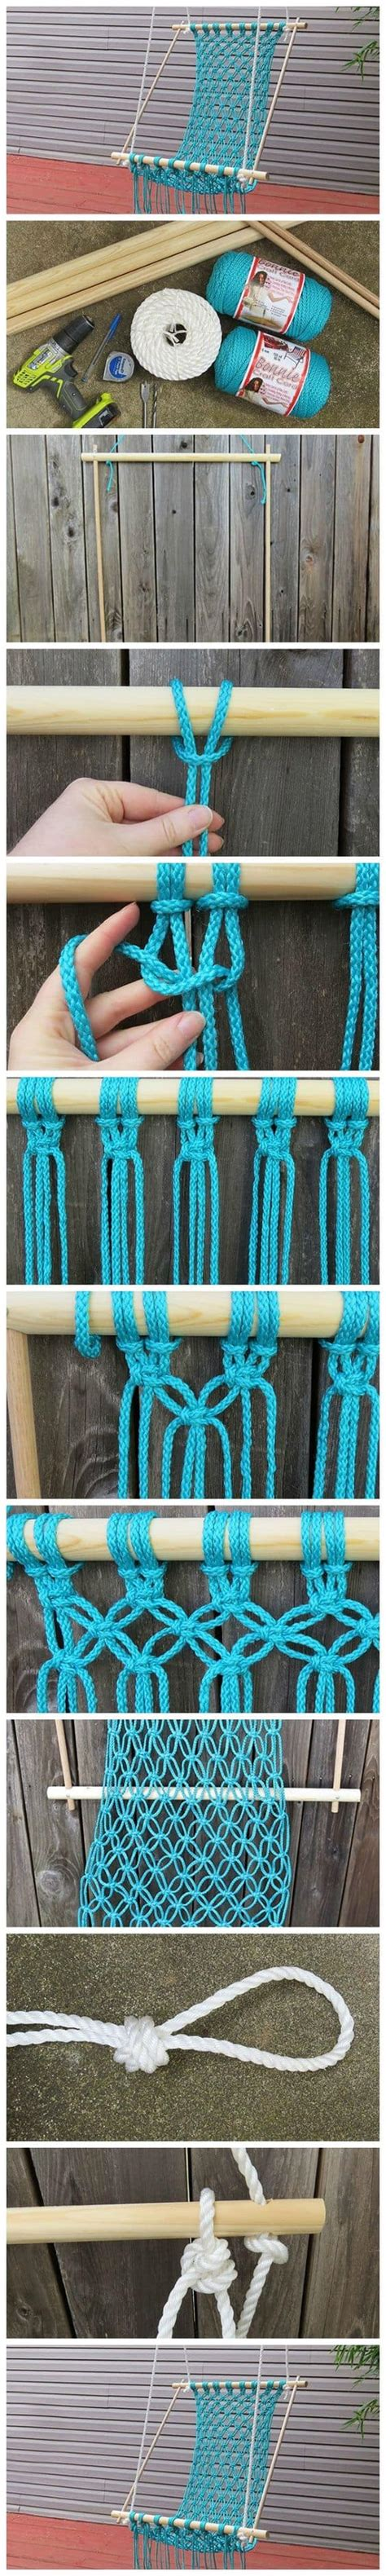 diy macrame hammock chair macrame hanging chair diy is easy to make Diy Macrame Hammock Chair